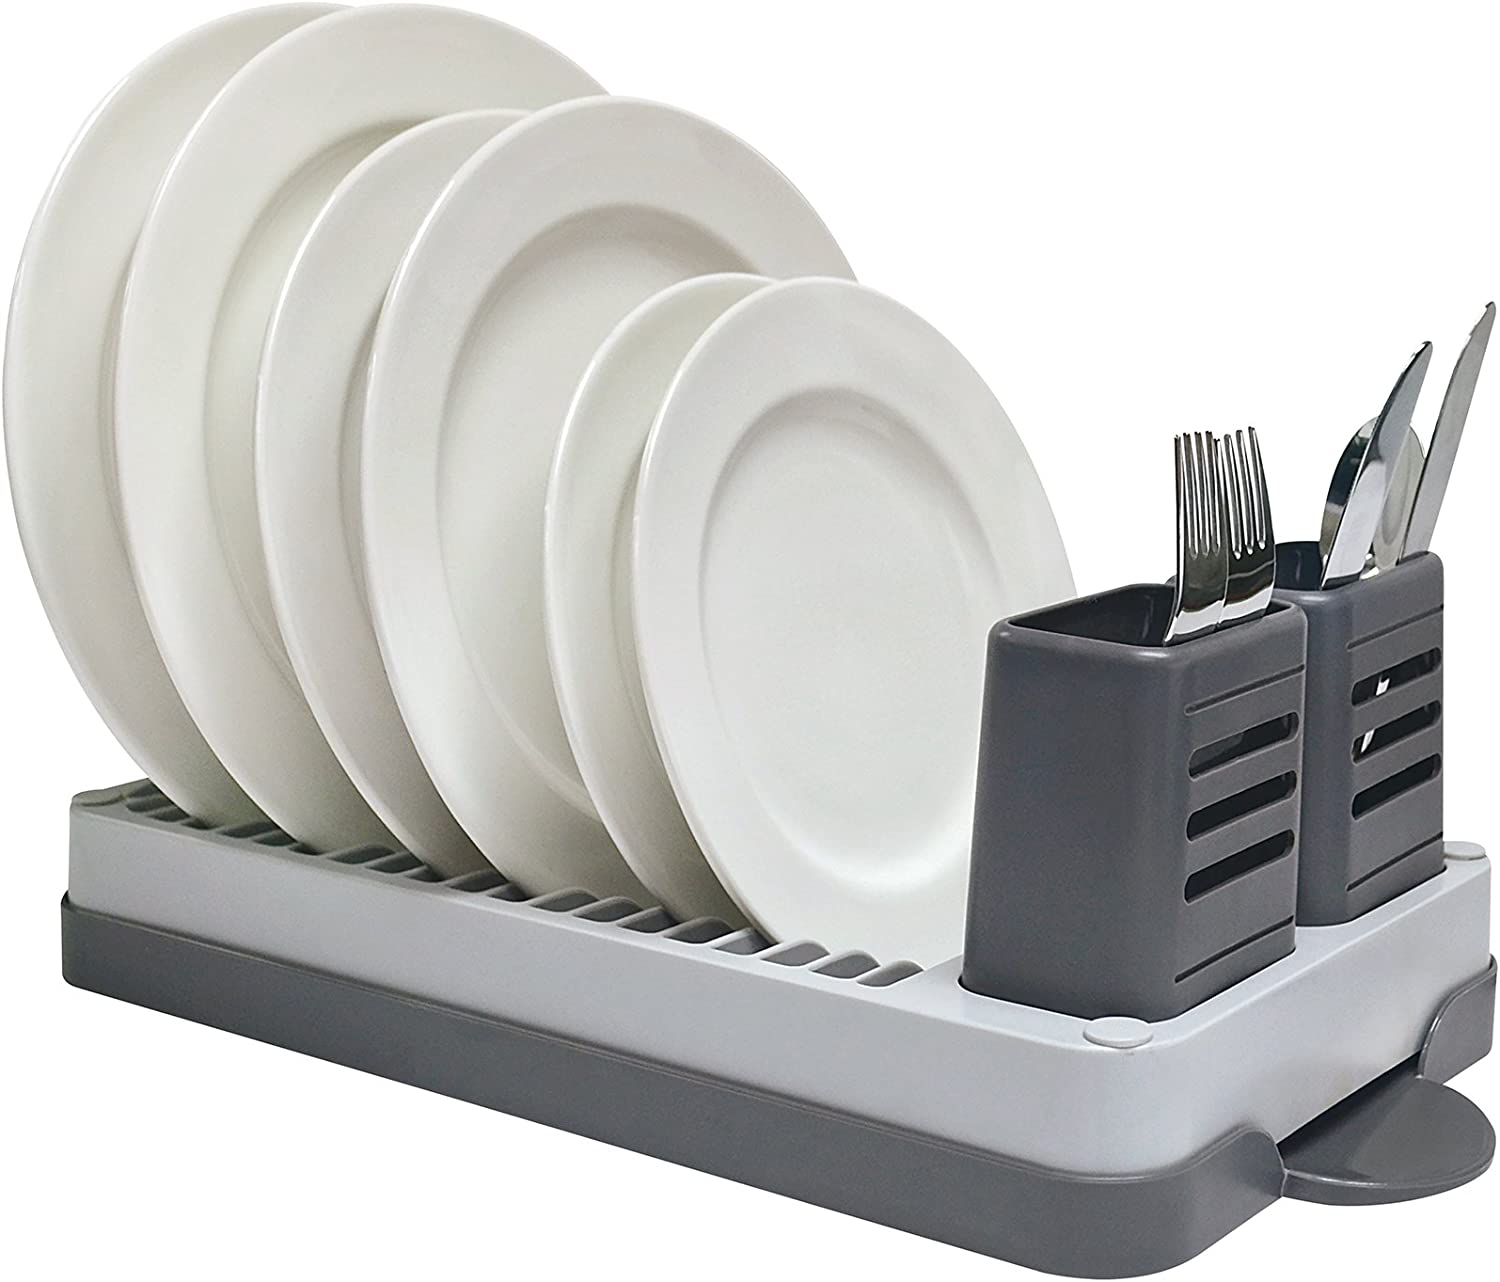 Real Home Innovations Designer Compact Dish Rack Set, Gray